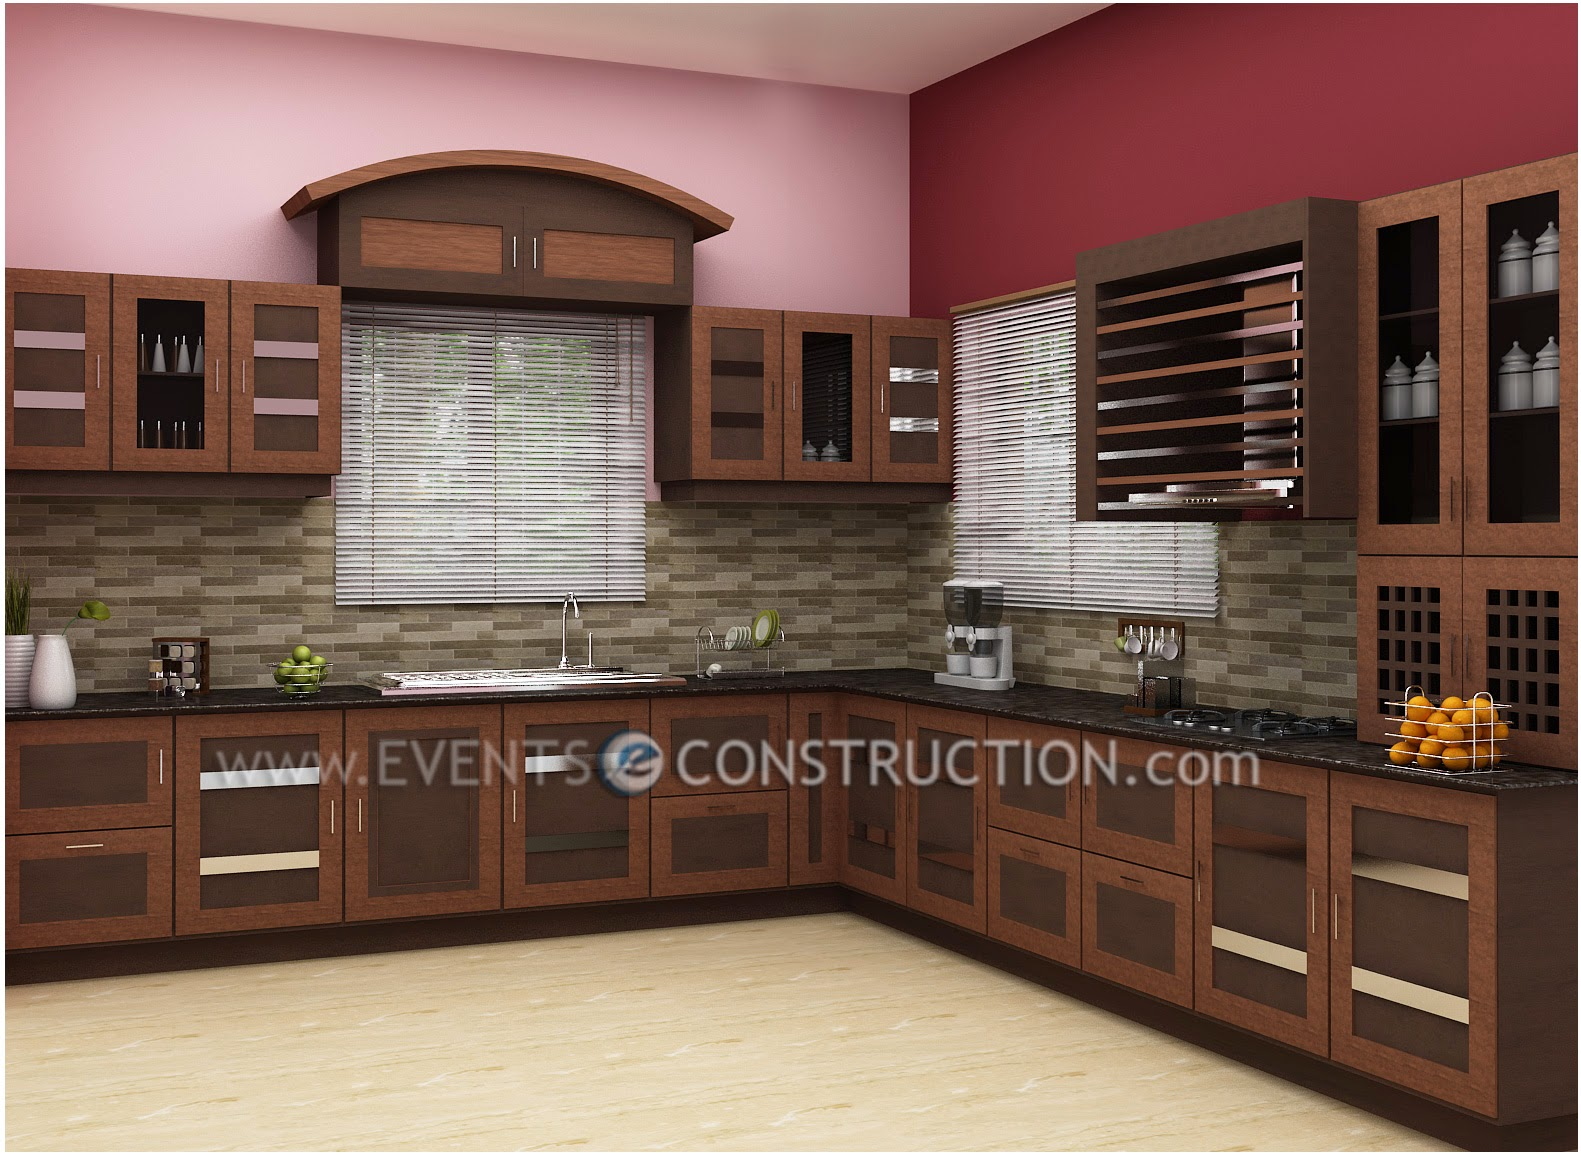 Evens construction pvt ltd march 2014 for Kitchen designs kerala